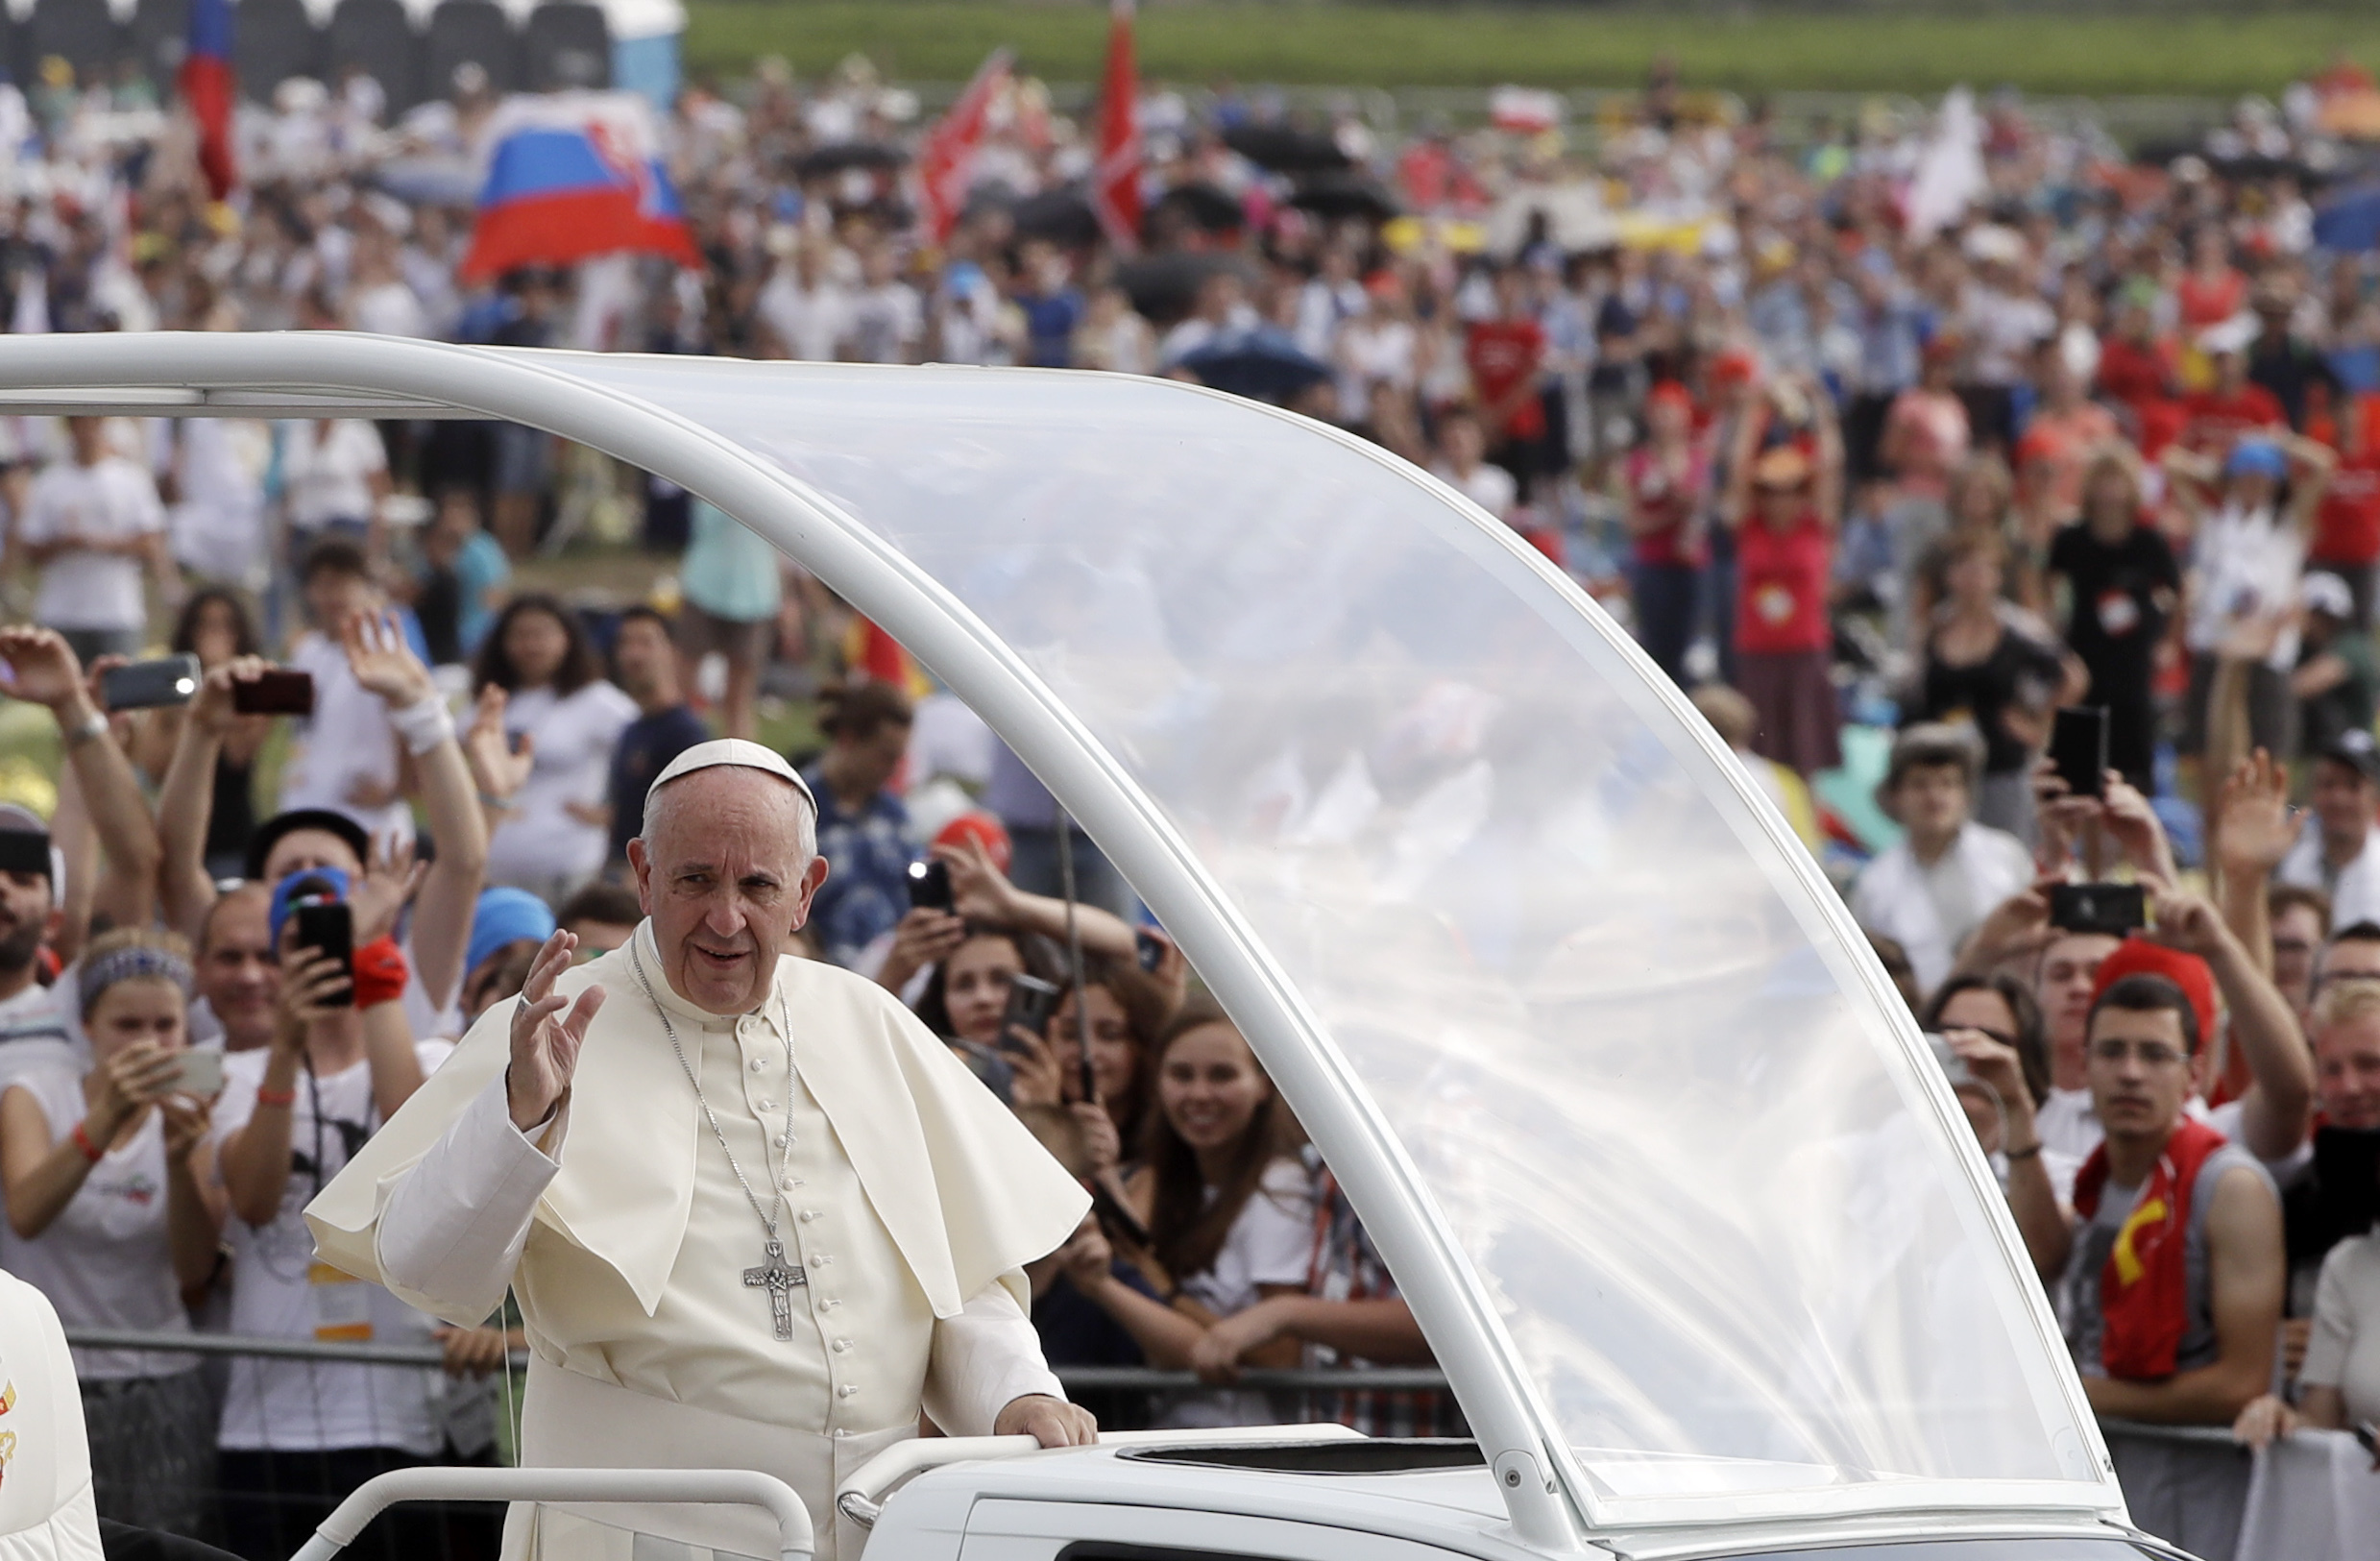 Pope Francis followed by a security guard arrives to celebrate a mass at conclusion of the World Youth Day inKrakow, Poland, Sunday, July 31, 2016.